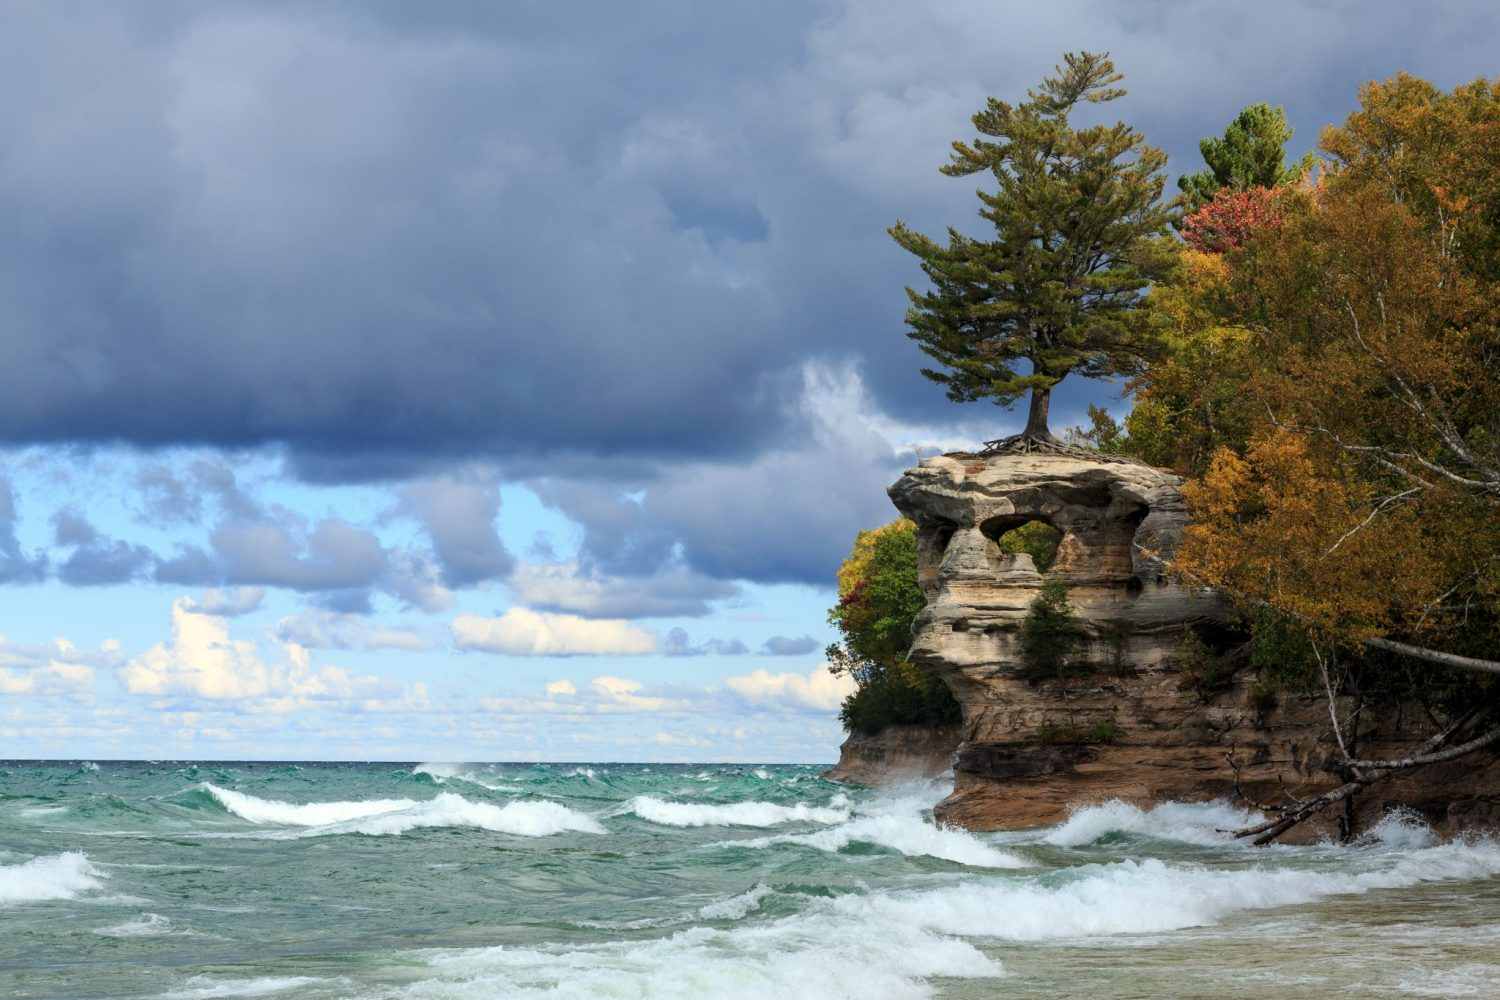 Chapel Rock and Lake Superior at Pictured Rocks National Lakeshore